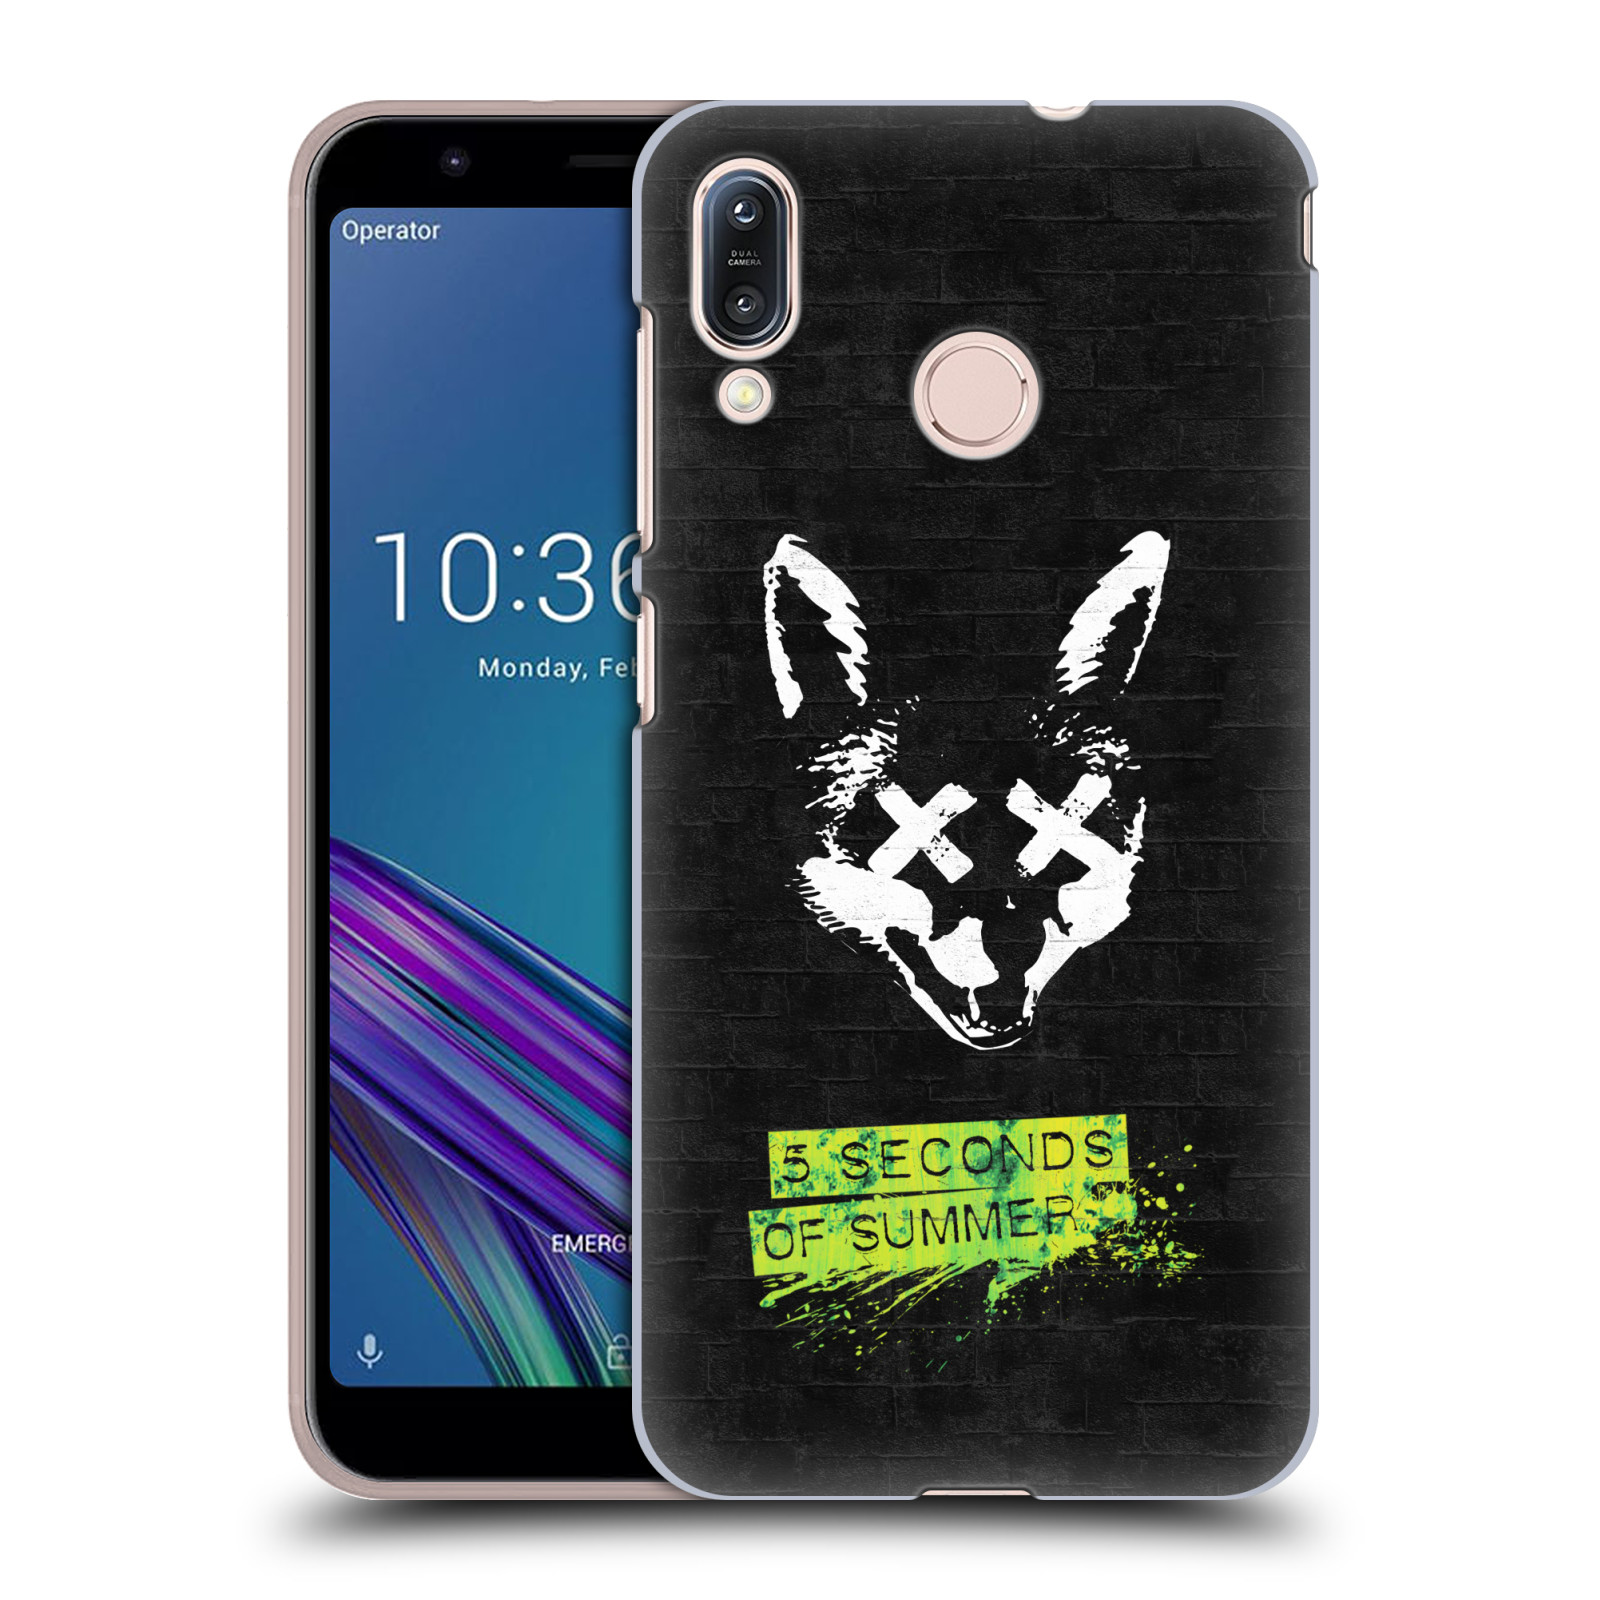 Plastové pouzdro na mobil Asus Zenfone Max M1 ZB555KL - Head Case - 5 Seconds of Summer - Fox